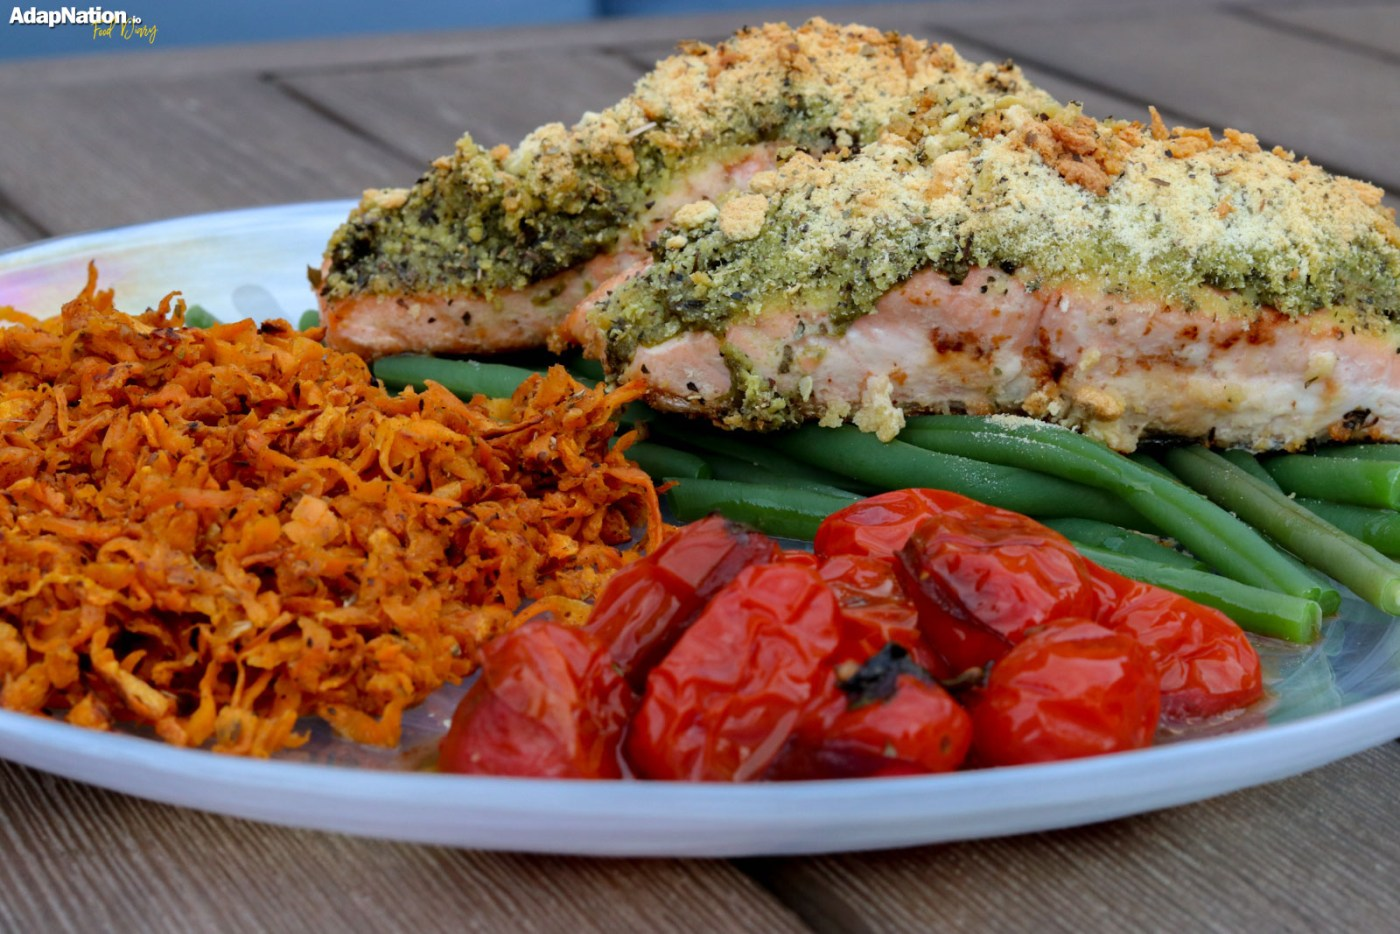 Herb Crusted Salmon with Shredded Sweet Potato & Balsamic Tomatoes